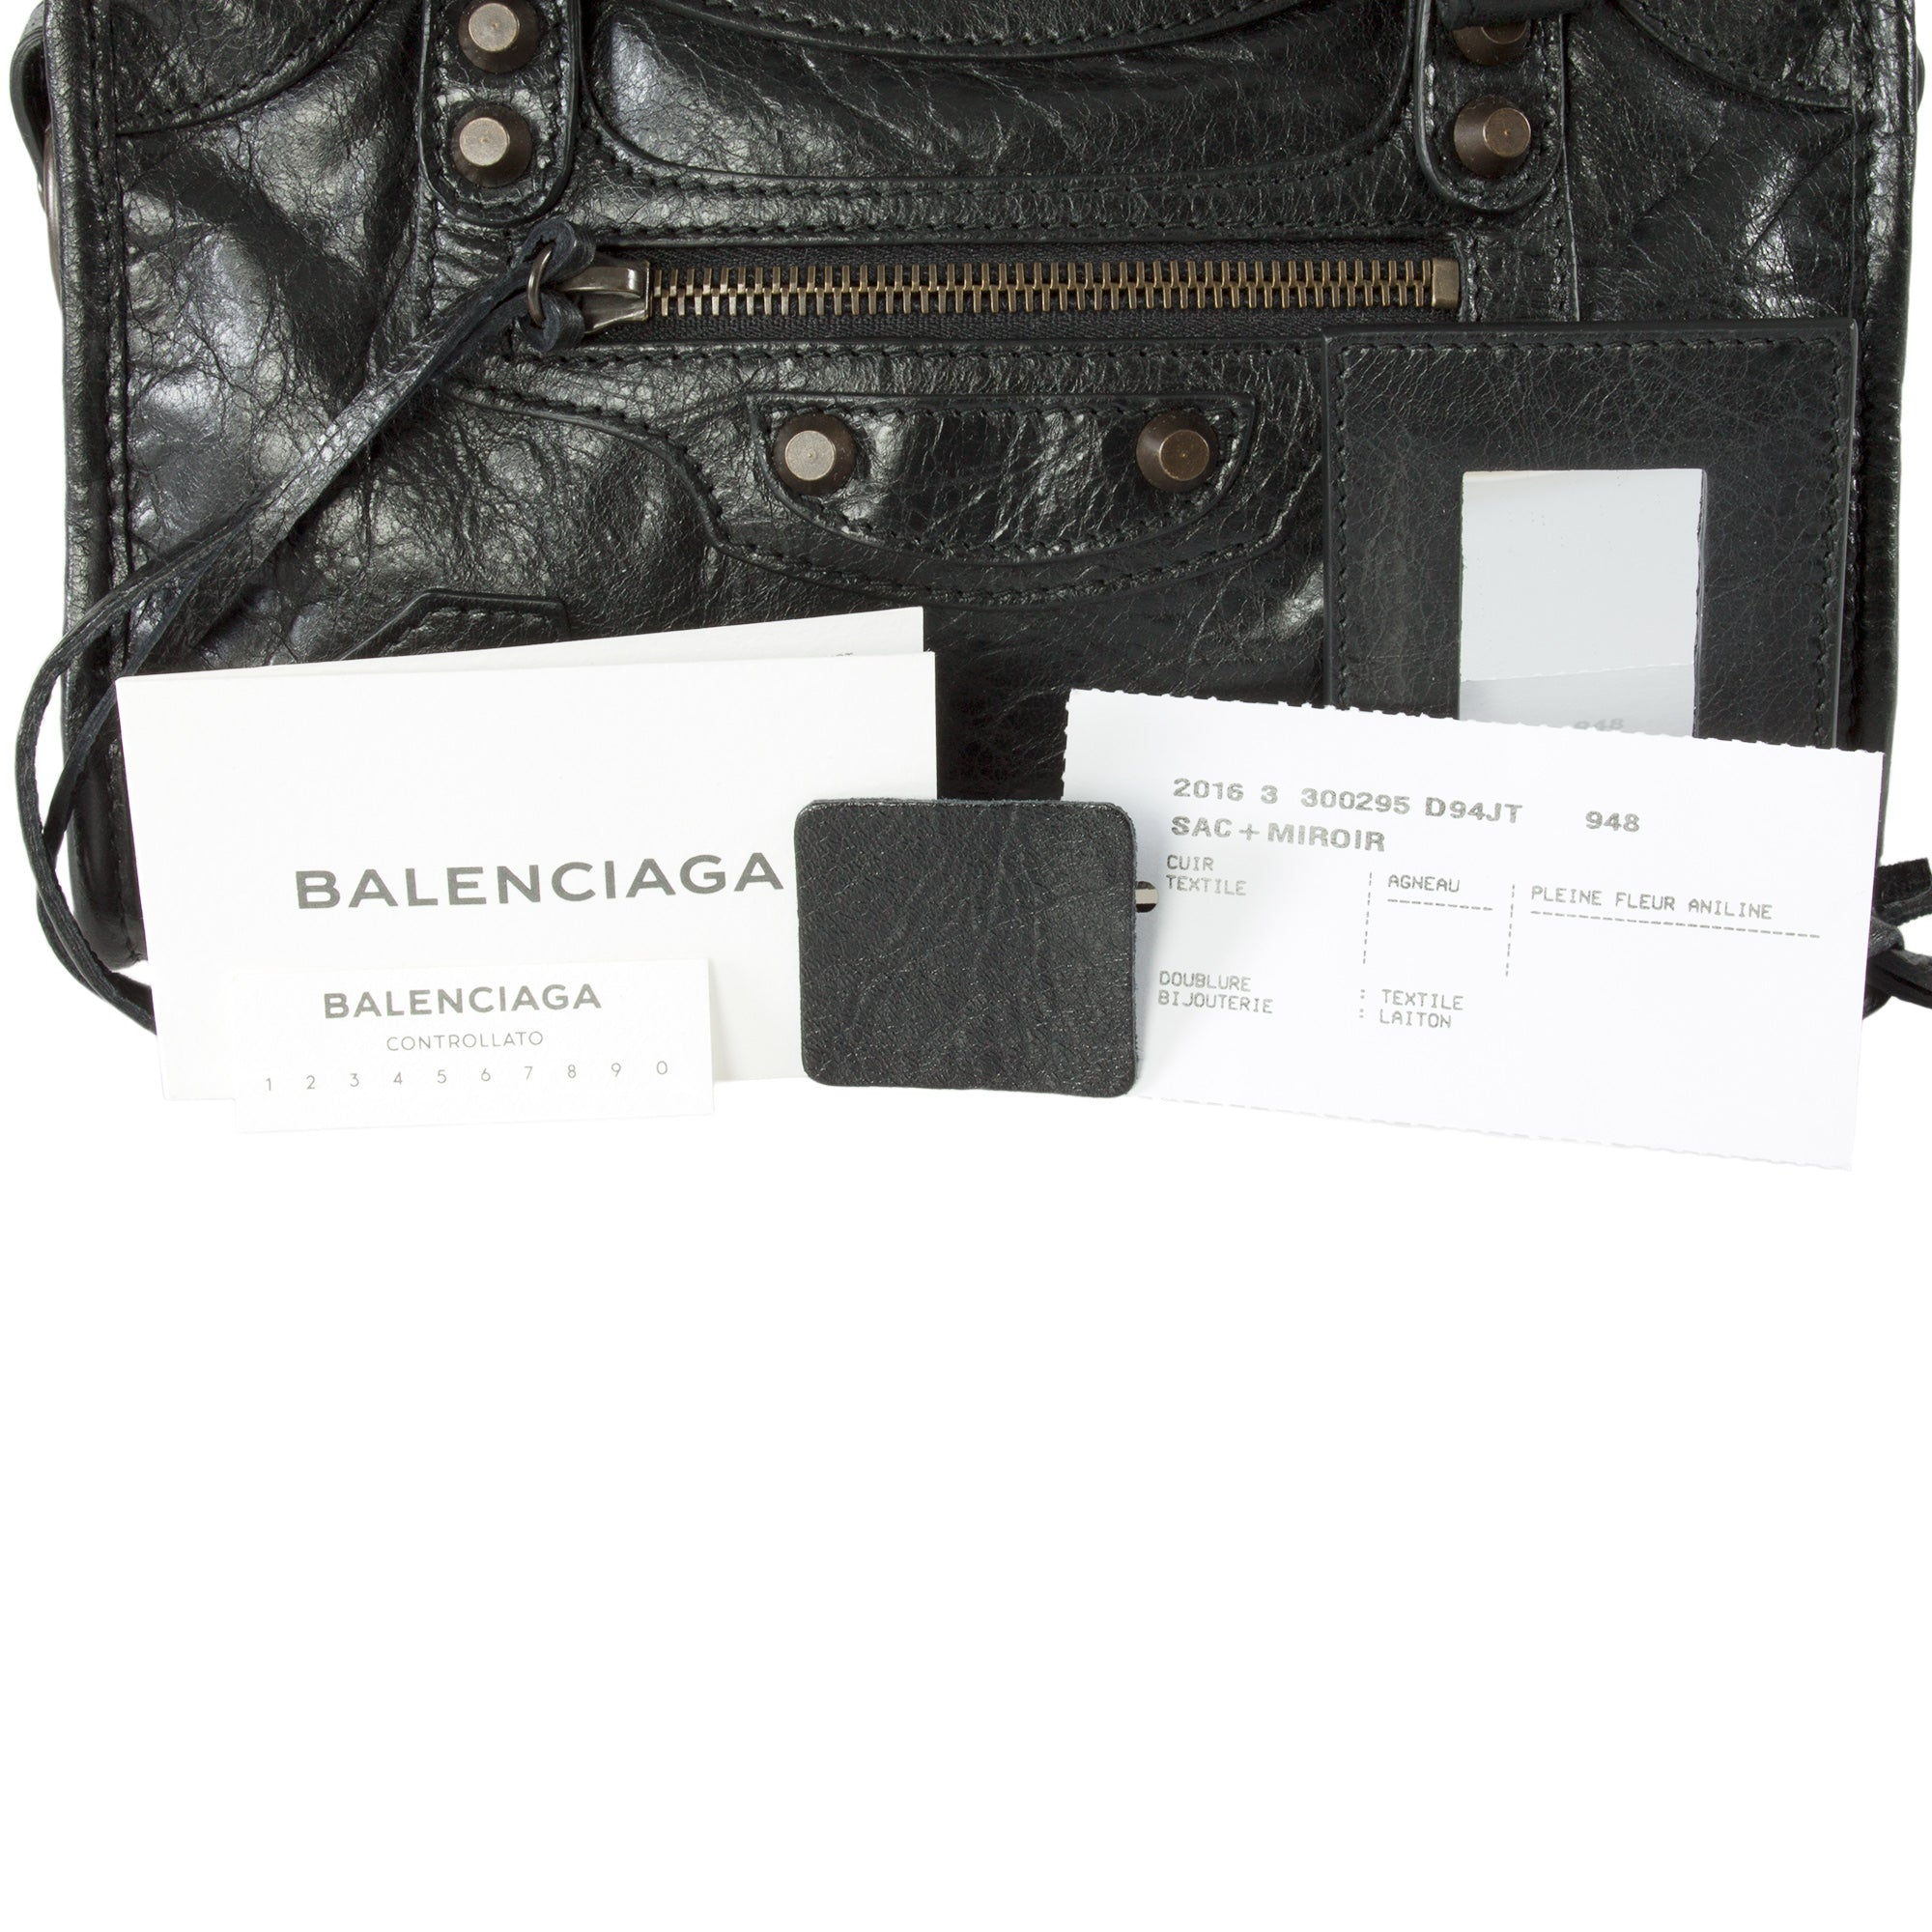 Balenciaga Classic Mini City Leather Bag